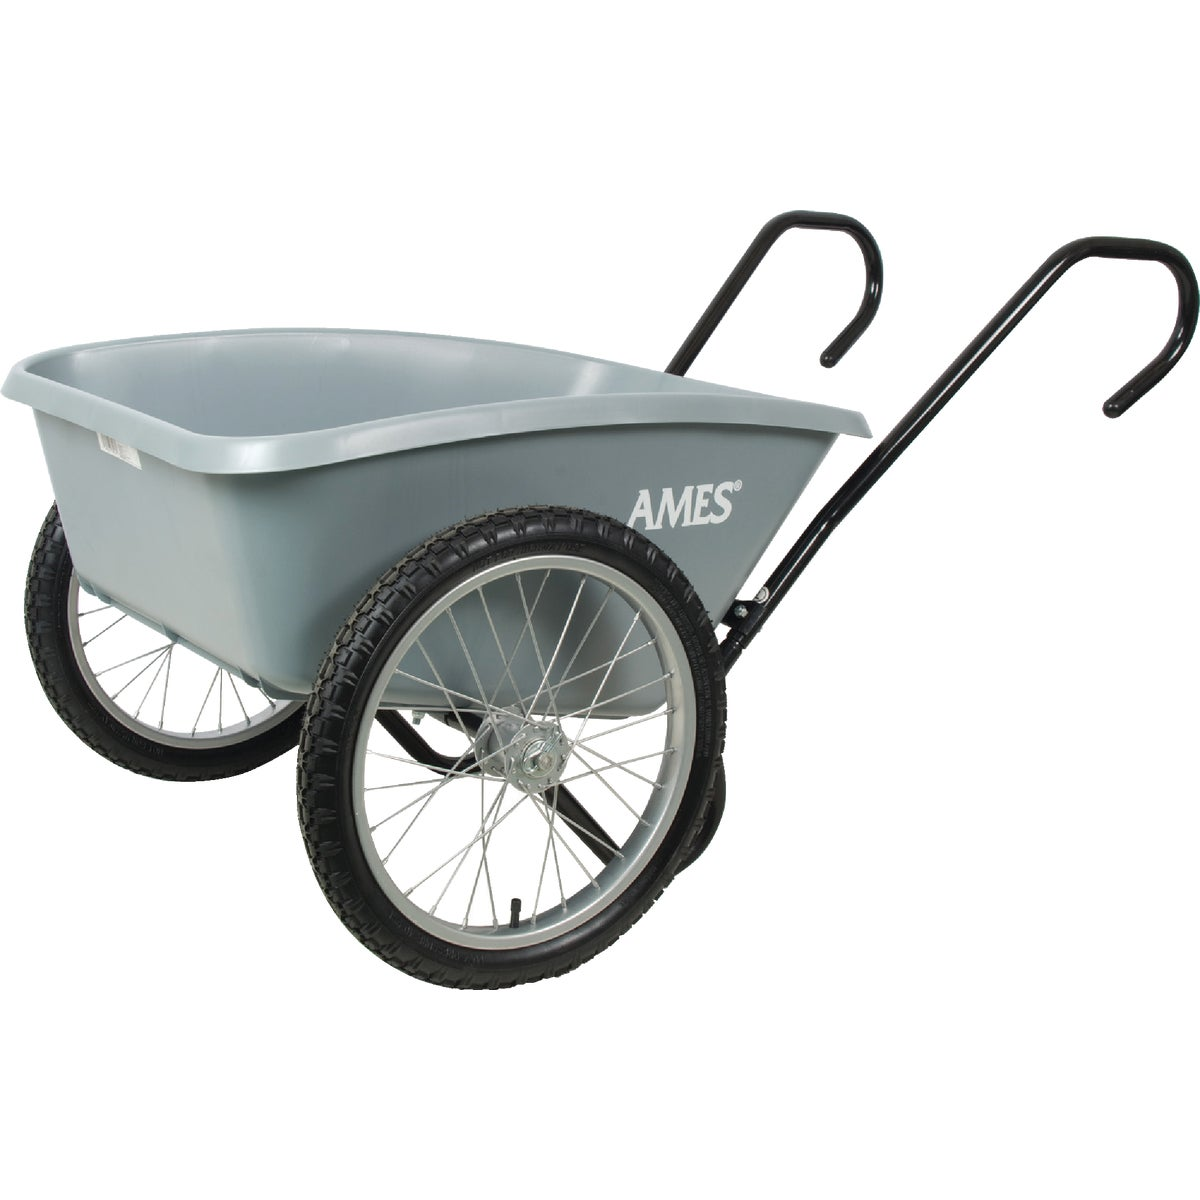 POLY YARD CART - TCCART by Ames True Temper